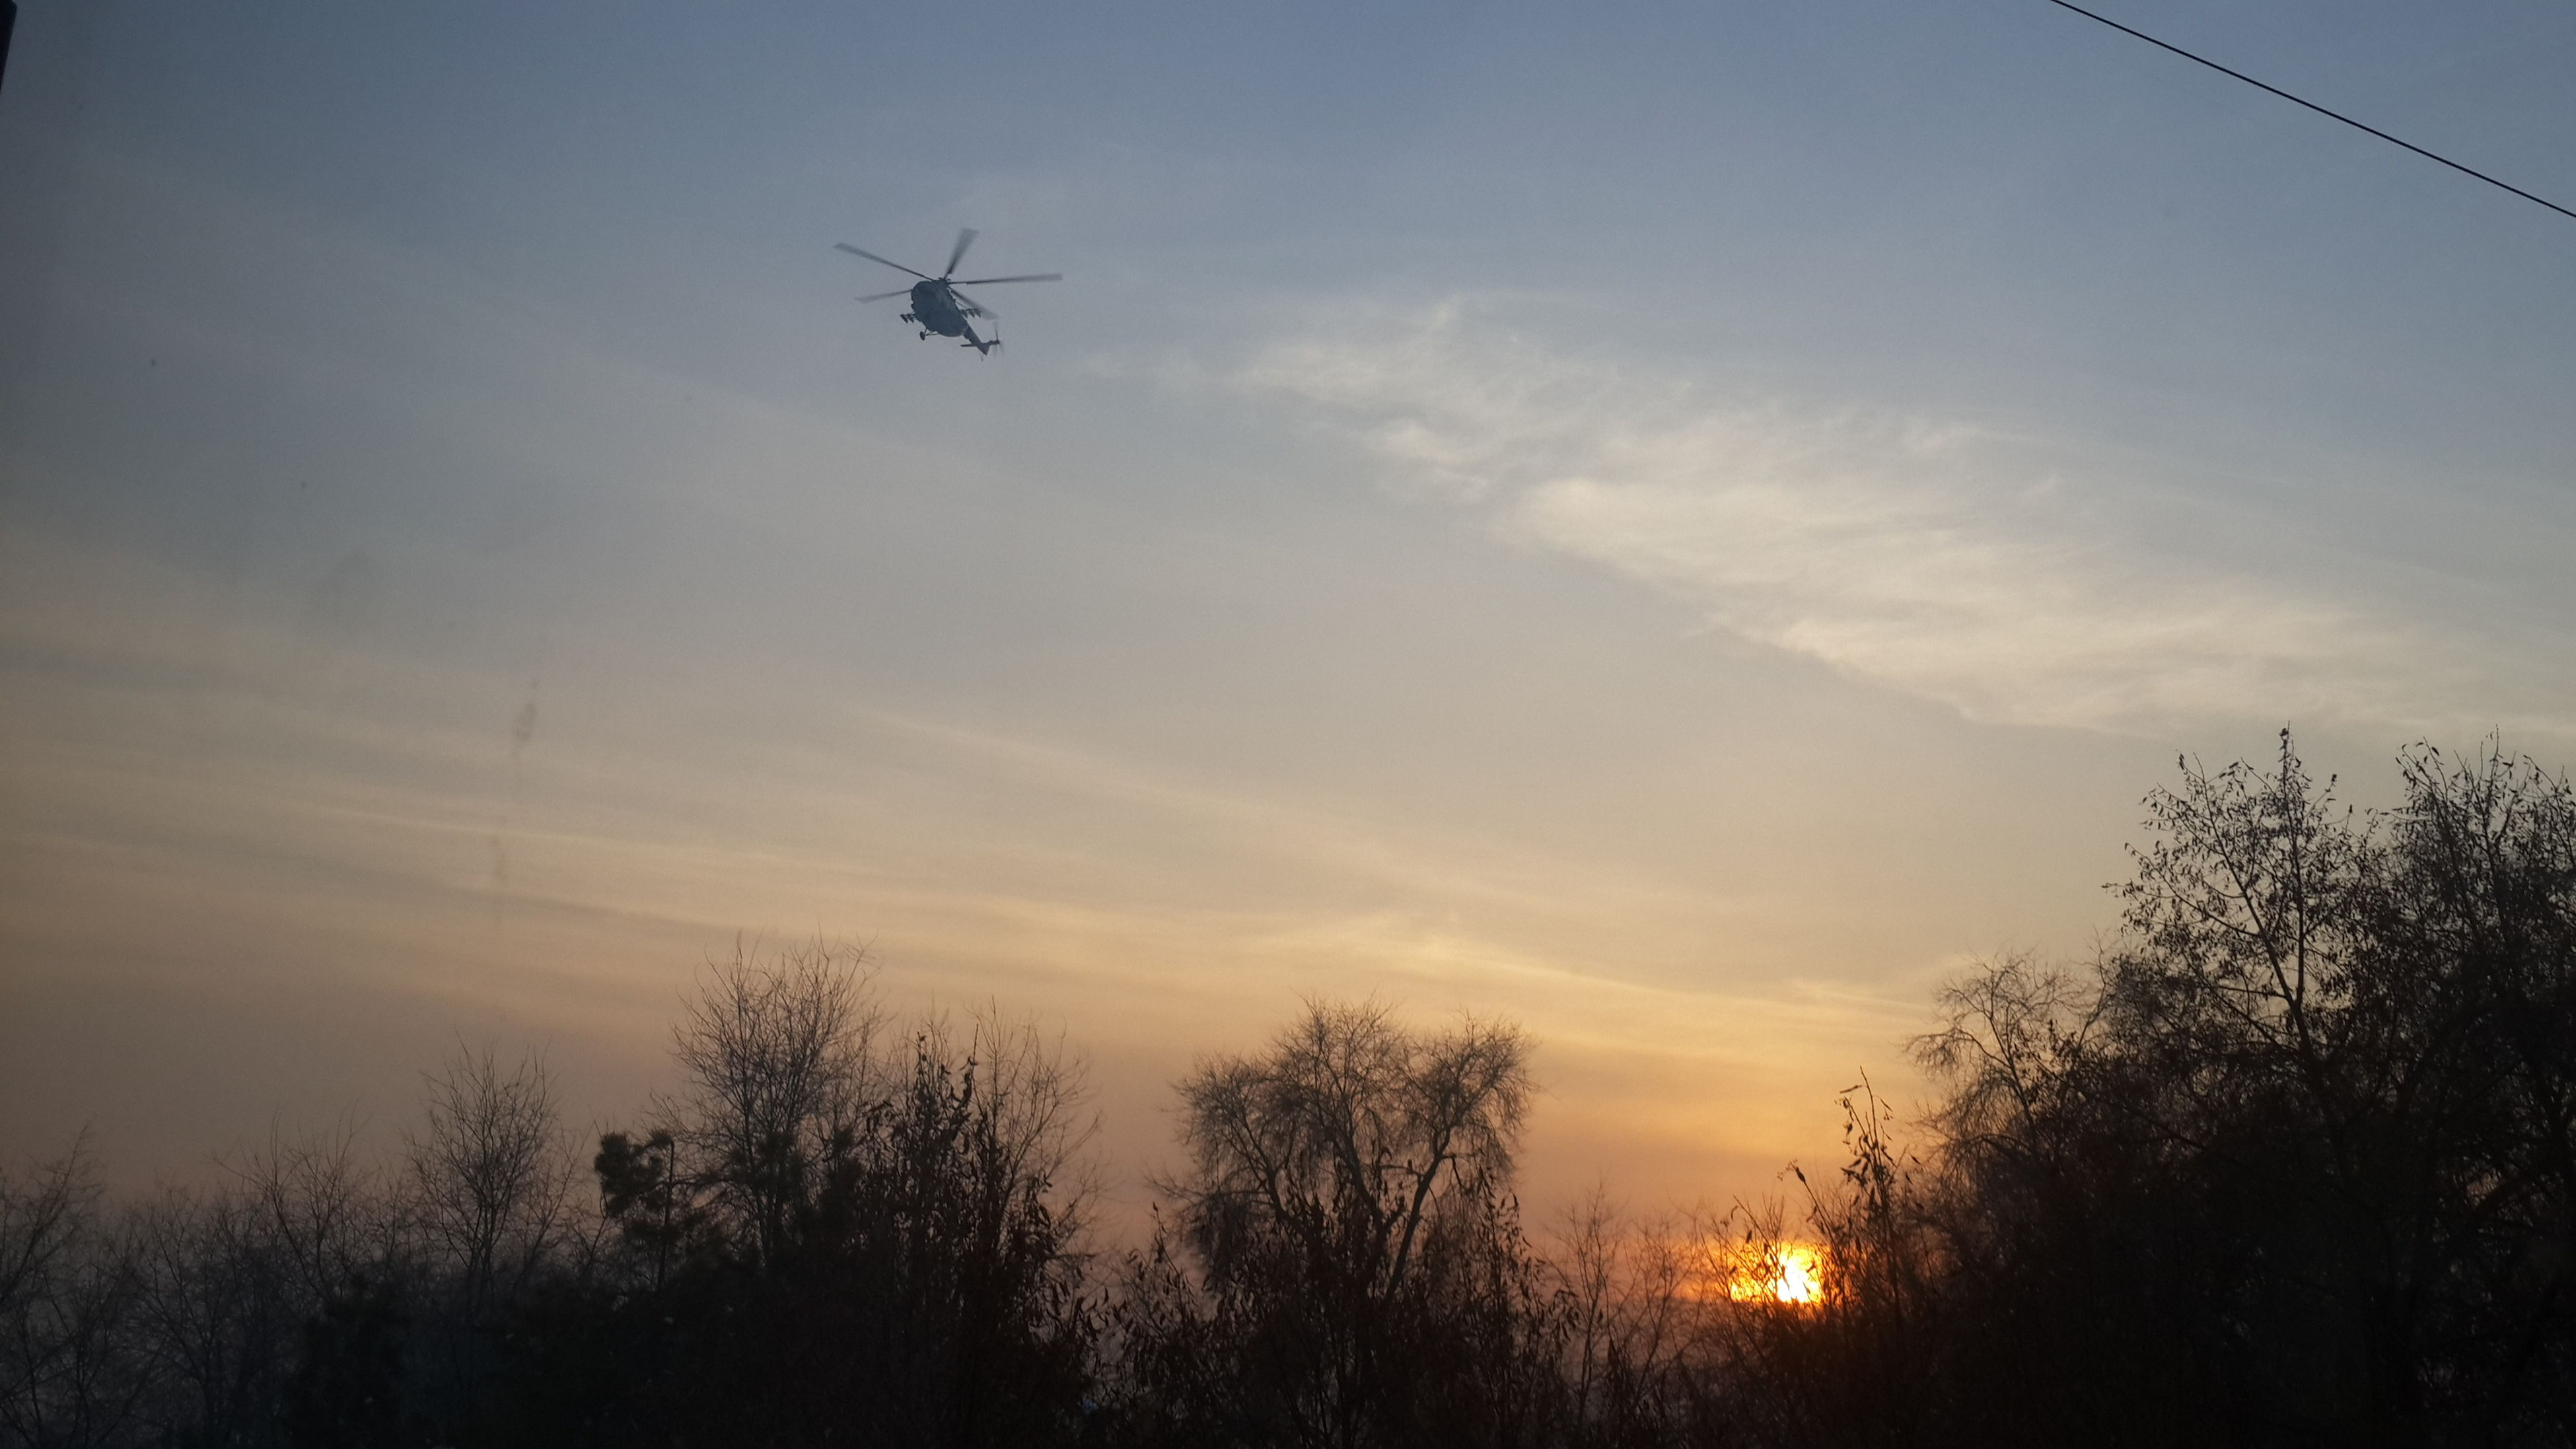 flying, silhouette, sunset, sky, airplane, transportation, tree, air vehicle, mid-air, mode of transport, low angle view, scenics, nature, beauty in nature, tranquil scene, tranquility, cloud - sky, dusk, orange color, outdoors